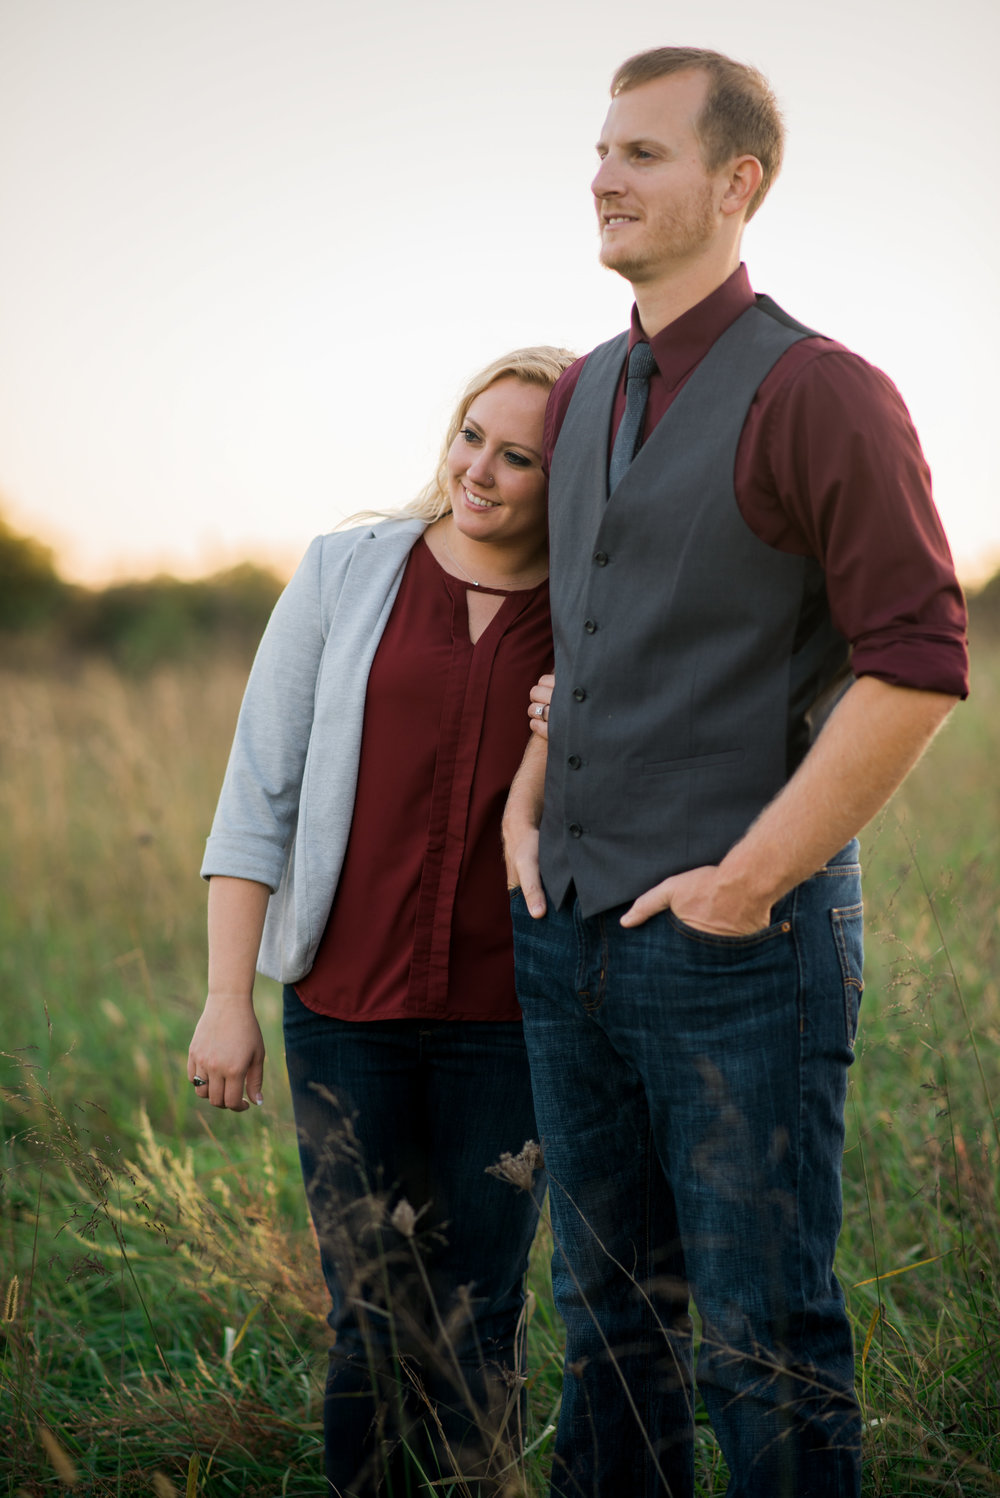 Lynchburg_College_Sorella_Farms_Baseball_Ballet_Virginia_Engagement_Session_Wedding_Photographers (87).jpg